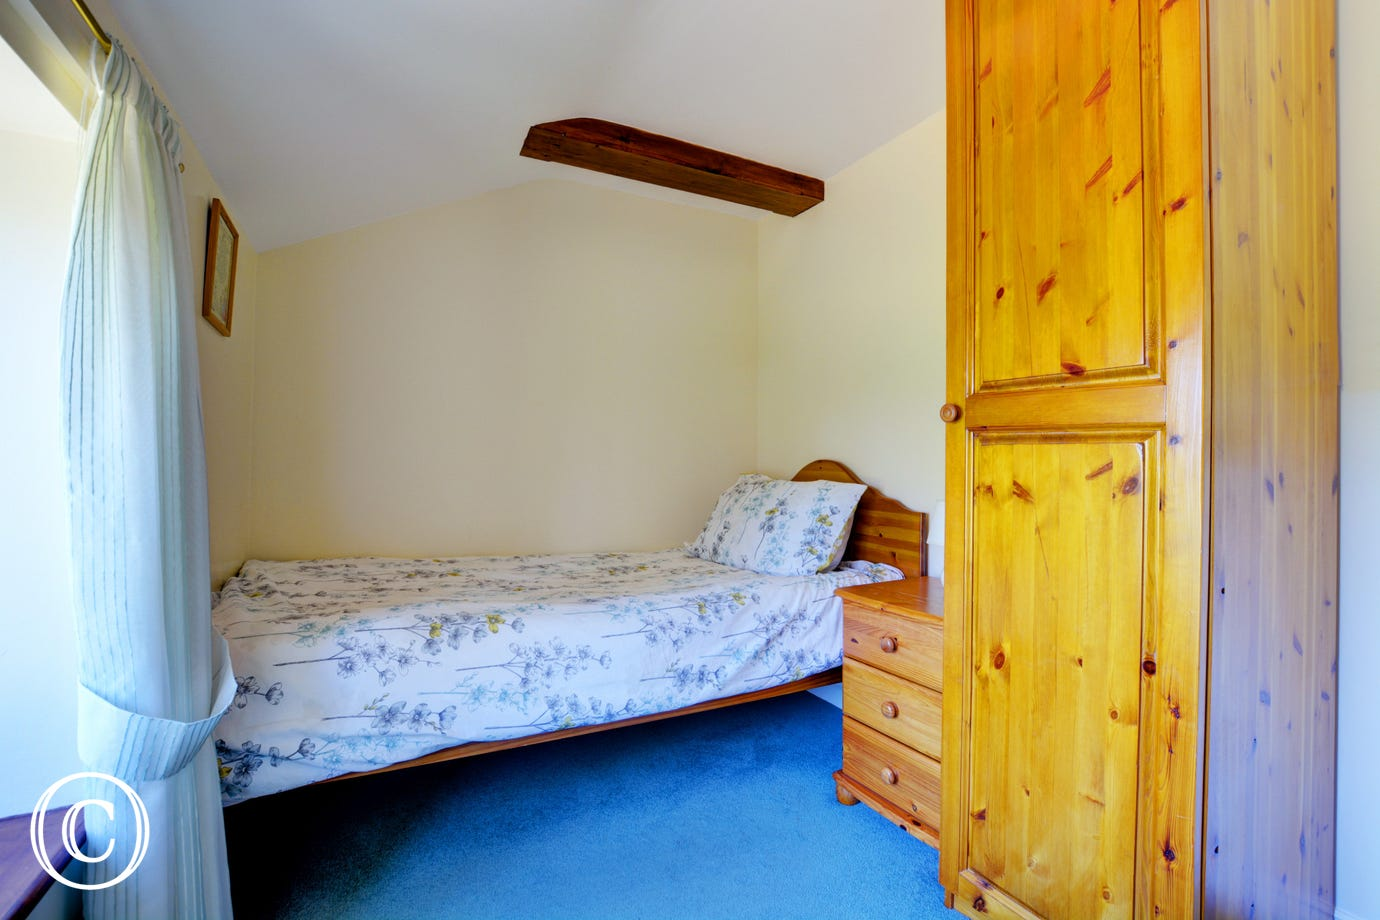 A third bedroom with pine furniture.